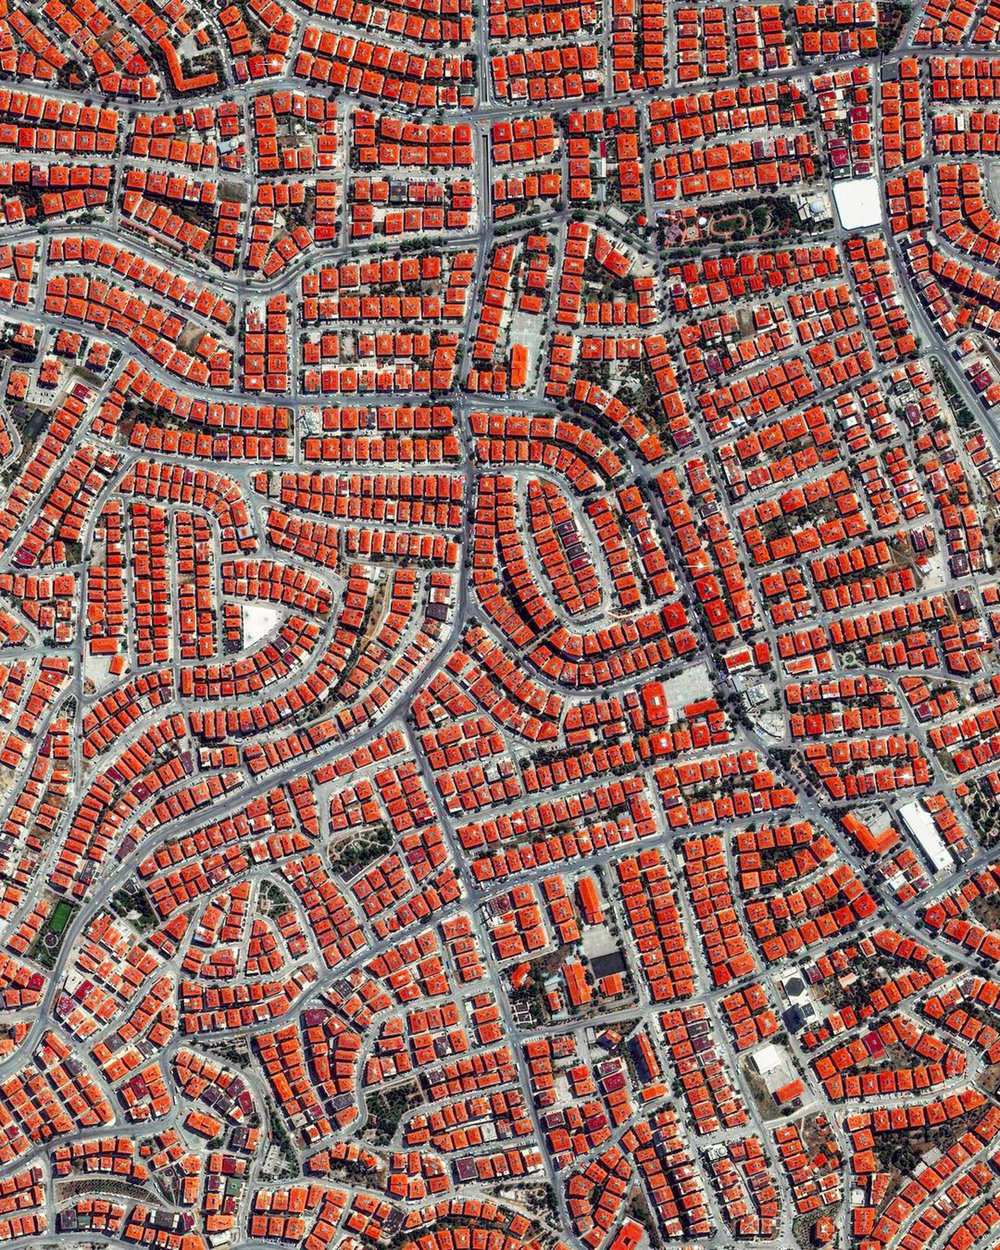 "A residential section of northern Ankara, Turkey, is shown in this Overview. Ankara is Turkey's capital and second largest city (after Istanbul), with more than 5.4 million residents. Historically known as Angora, the city lends its name to Angora wool, which is shorn from Angora rabbits and the long-haired Angora goat – the source of mohair.  39°59'15.0""N, 32°51'00.6""E  Source imagery: DigitalGlobe"